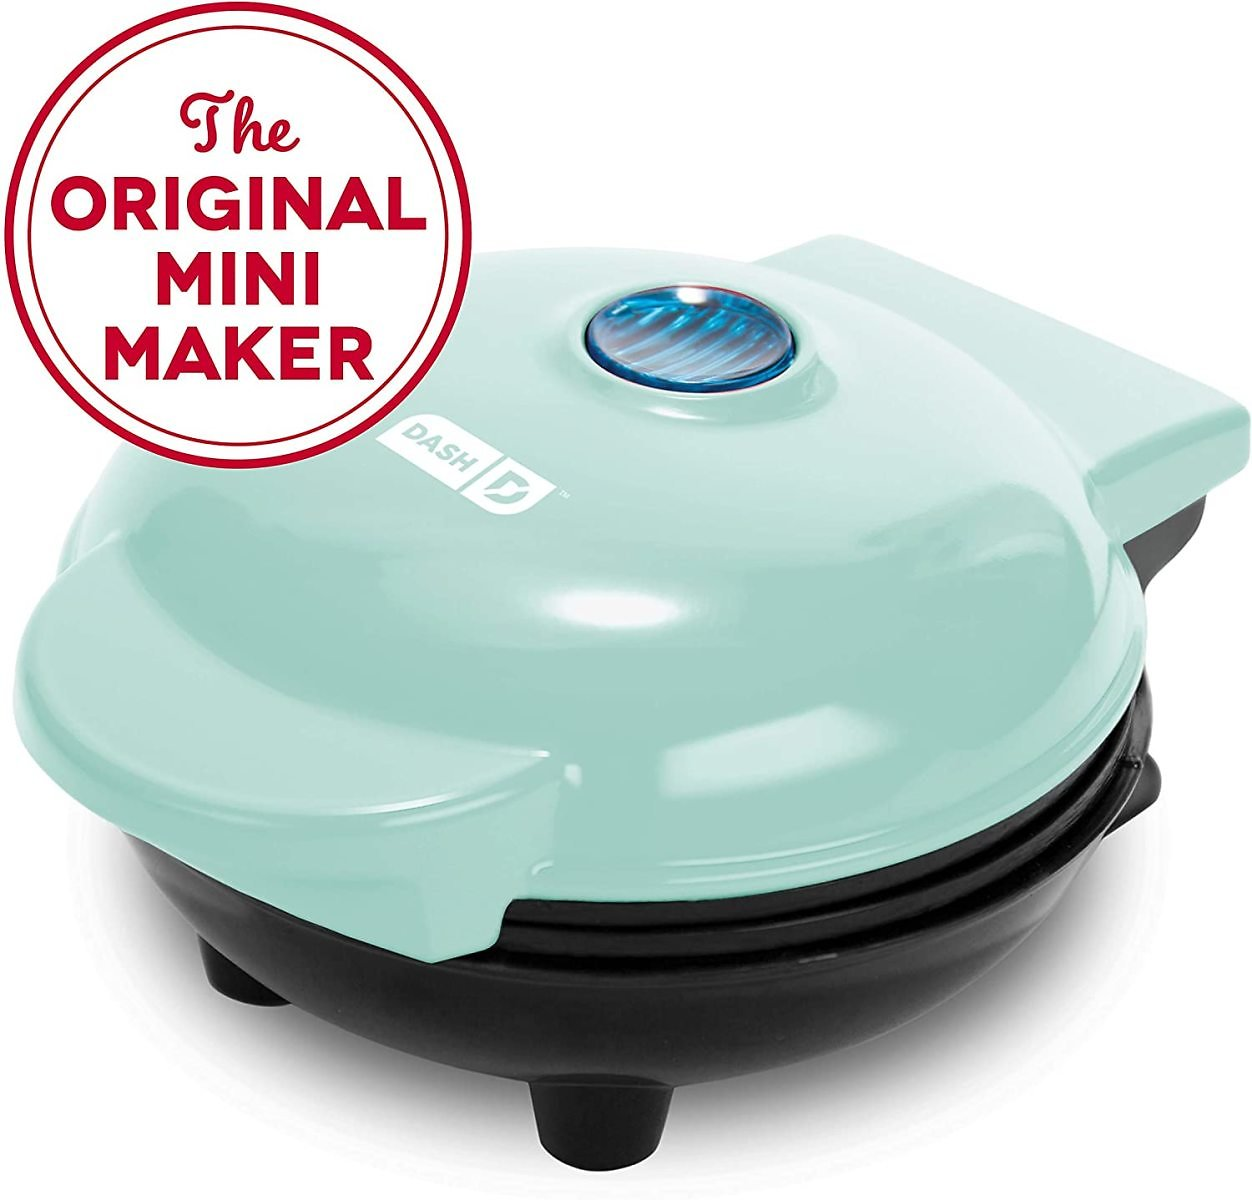 Dash Mini Maker: The Mini Waffle Maker Machine for Individual Waffles, Paninis, Hash Browns